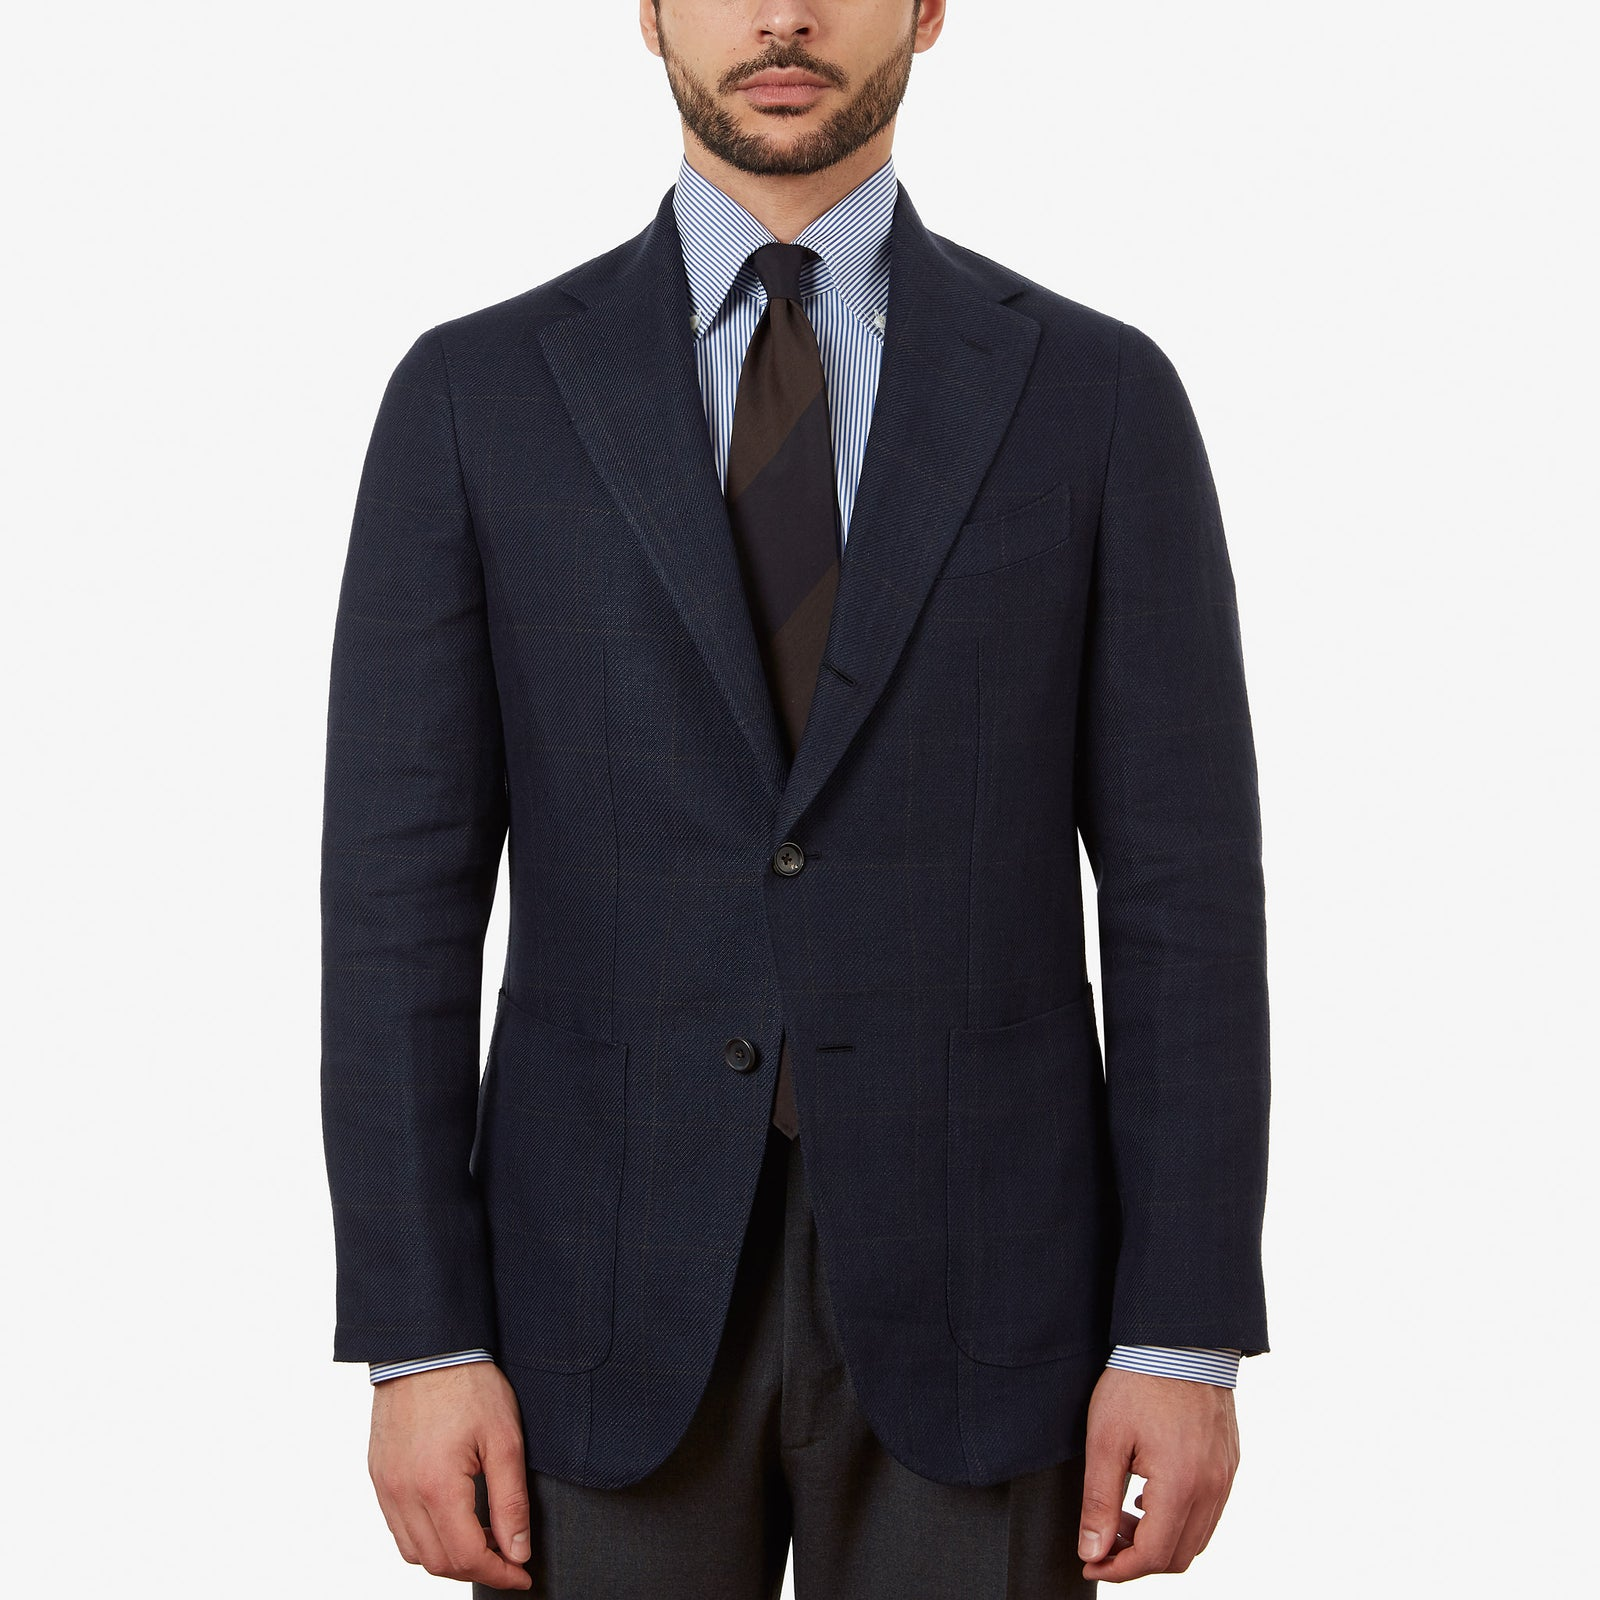 Sport Jacket Linen Navy Brown Overcheck